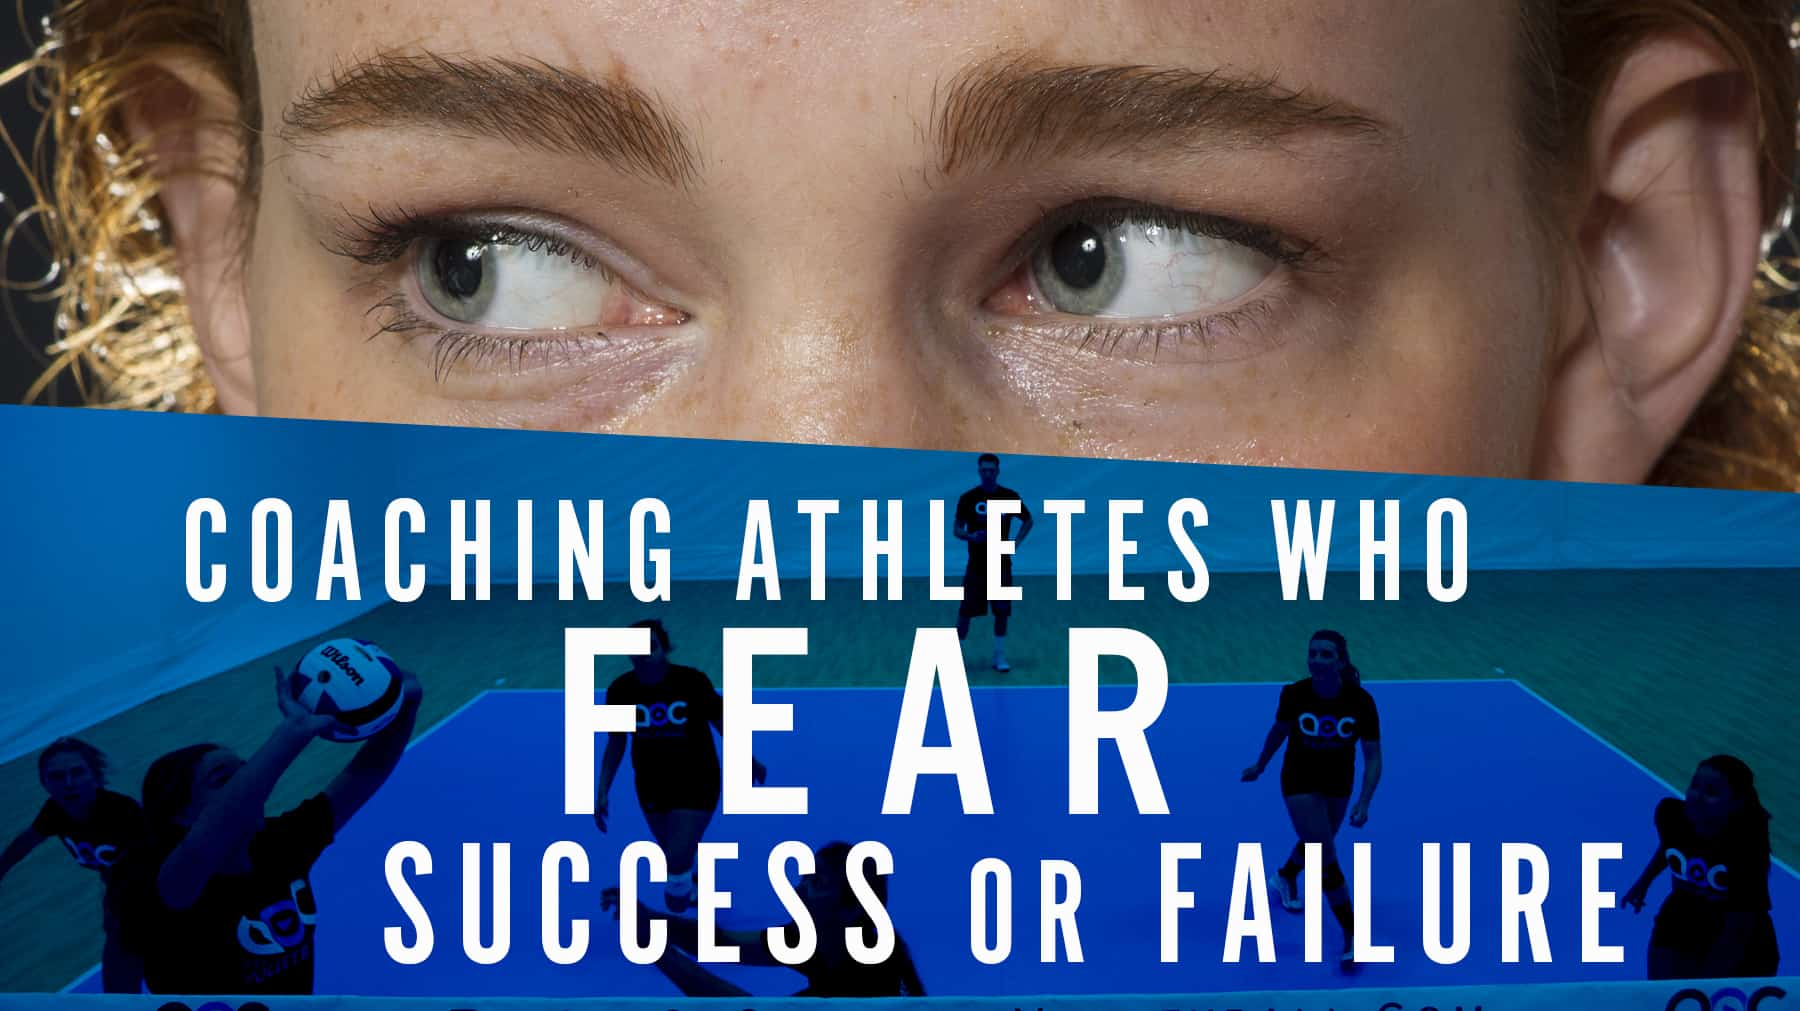 Coaching athletes who fear success or failure